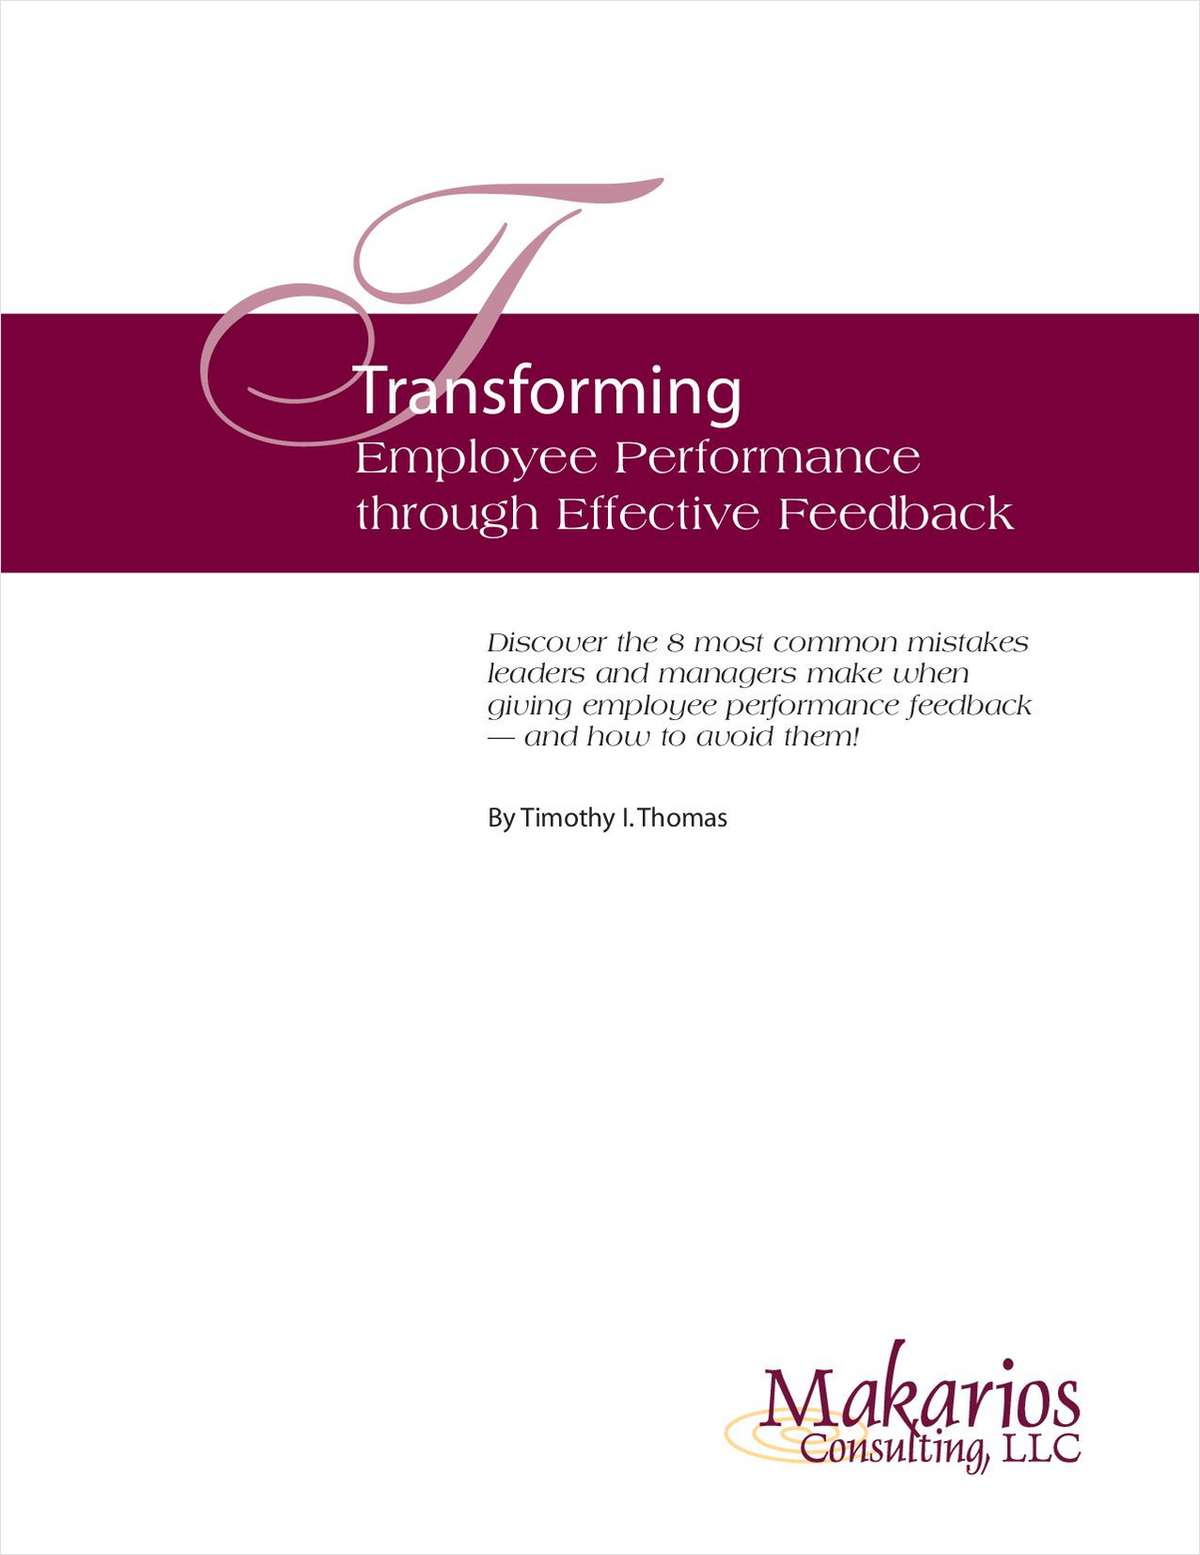 Transforming Employee Performance Through Effective Feedback